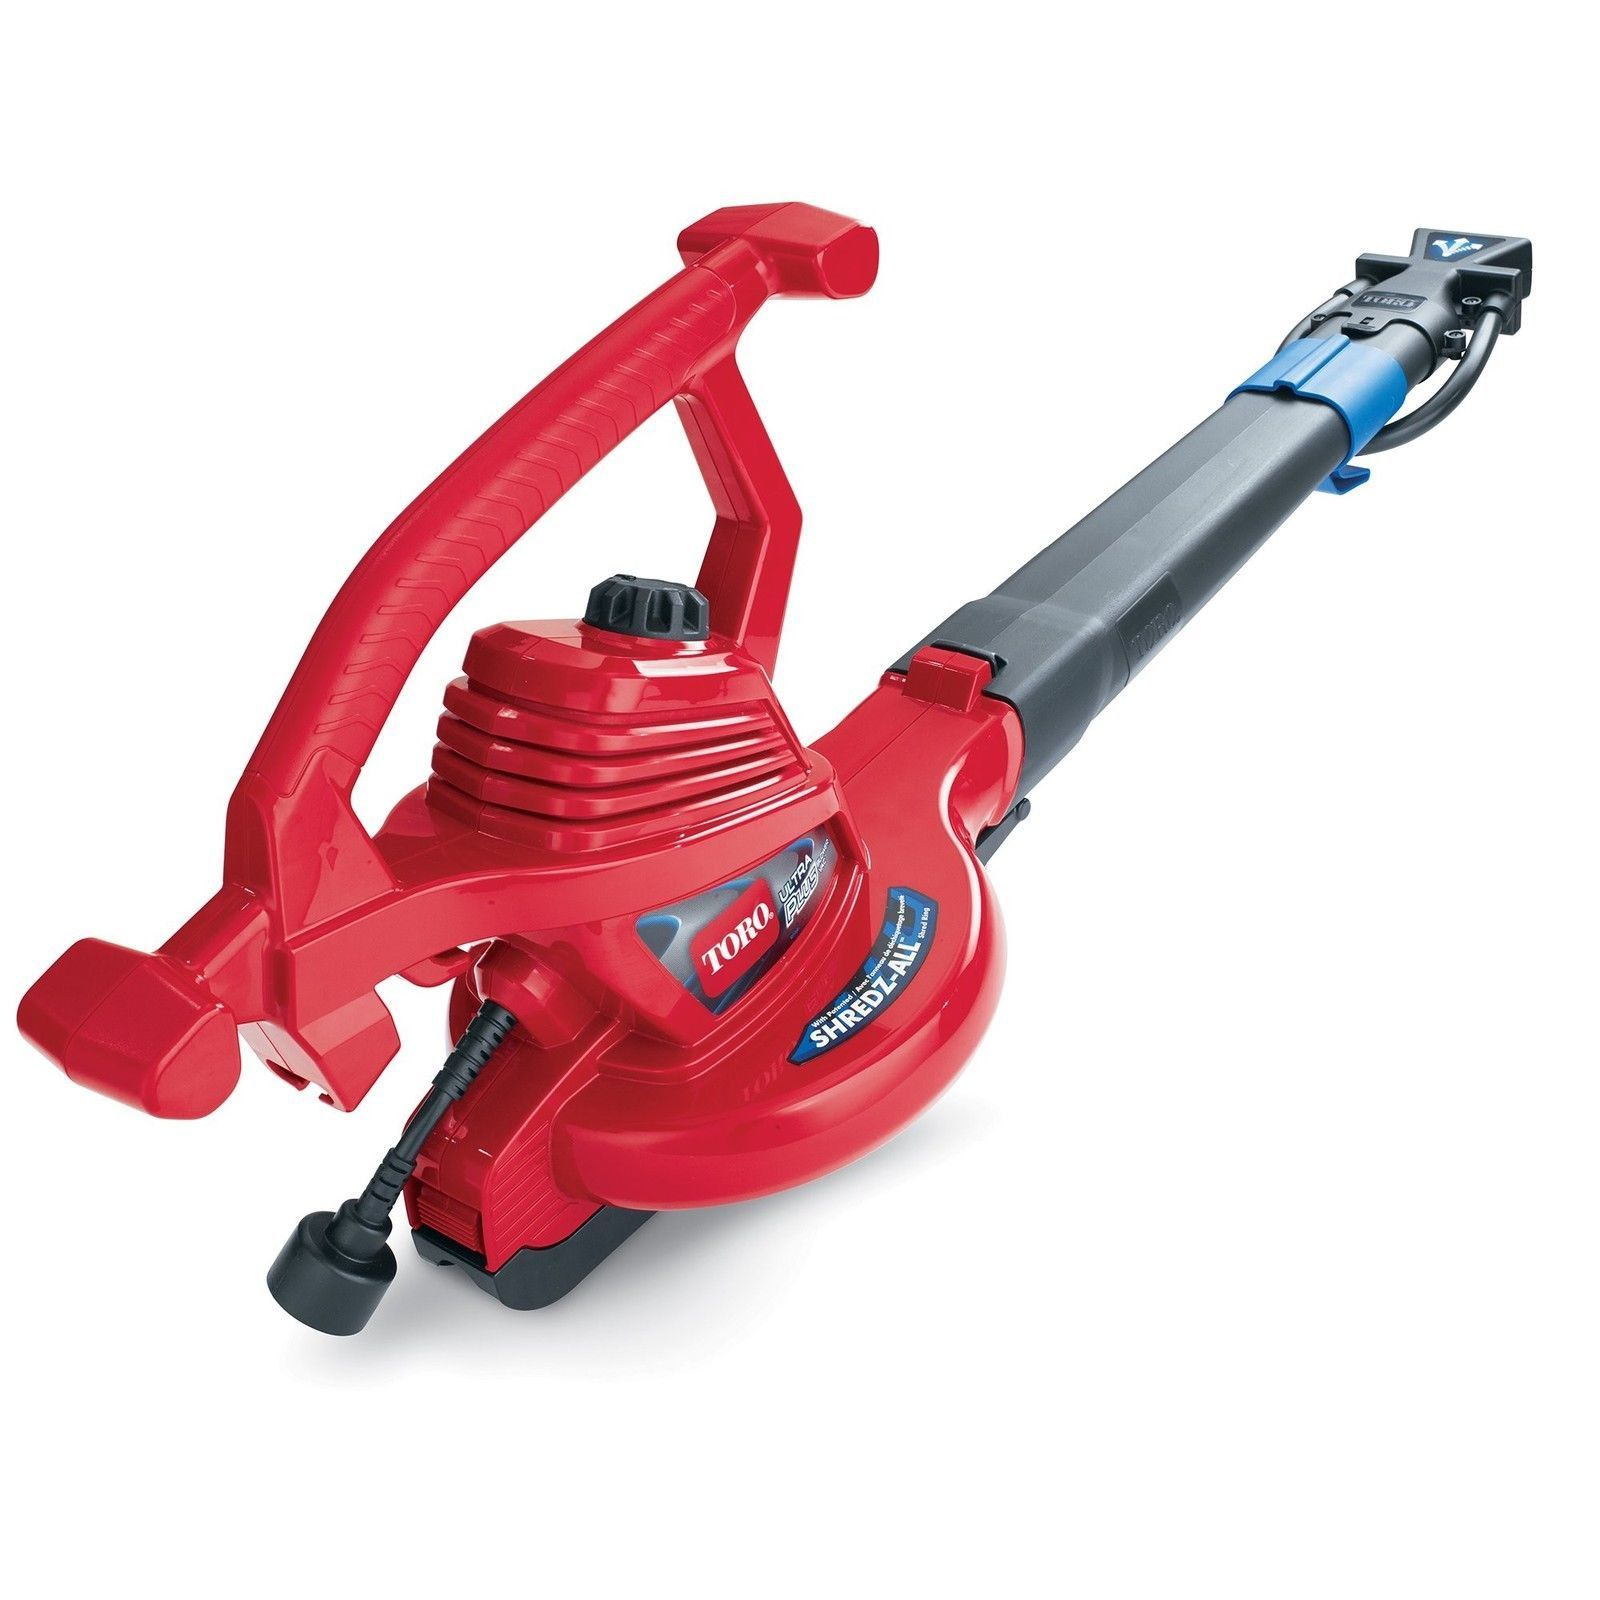 Toro 51621 Ultraplus Leaf Blower Vacuum Variable Speed Up To 250 Mph With Metal Impeller 12 Amp Products Leaf Blower Garden Tool Storage Yard Tools